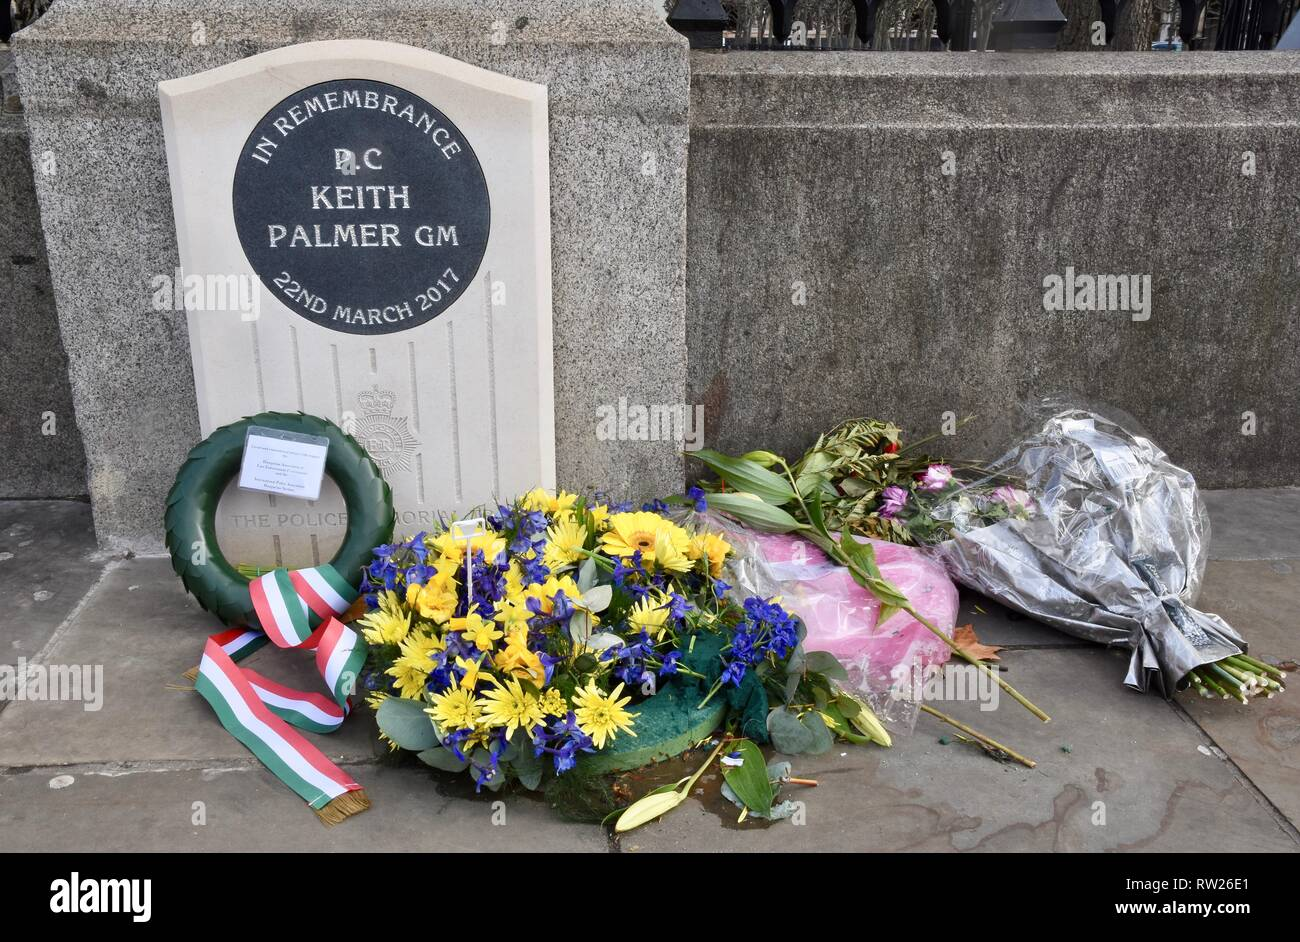 4th Mar 2019. Bouquets continue to be laid at the new memorial to PC Keith Palmer as we approach the second anniversary of his death in the Westminster Bridge Terror Attack on 22.03.2017.Houses of Parliament,Westminster,London.UK Credit: michael melia/Alamy Live News - Stock Image